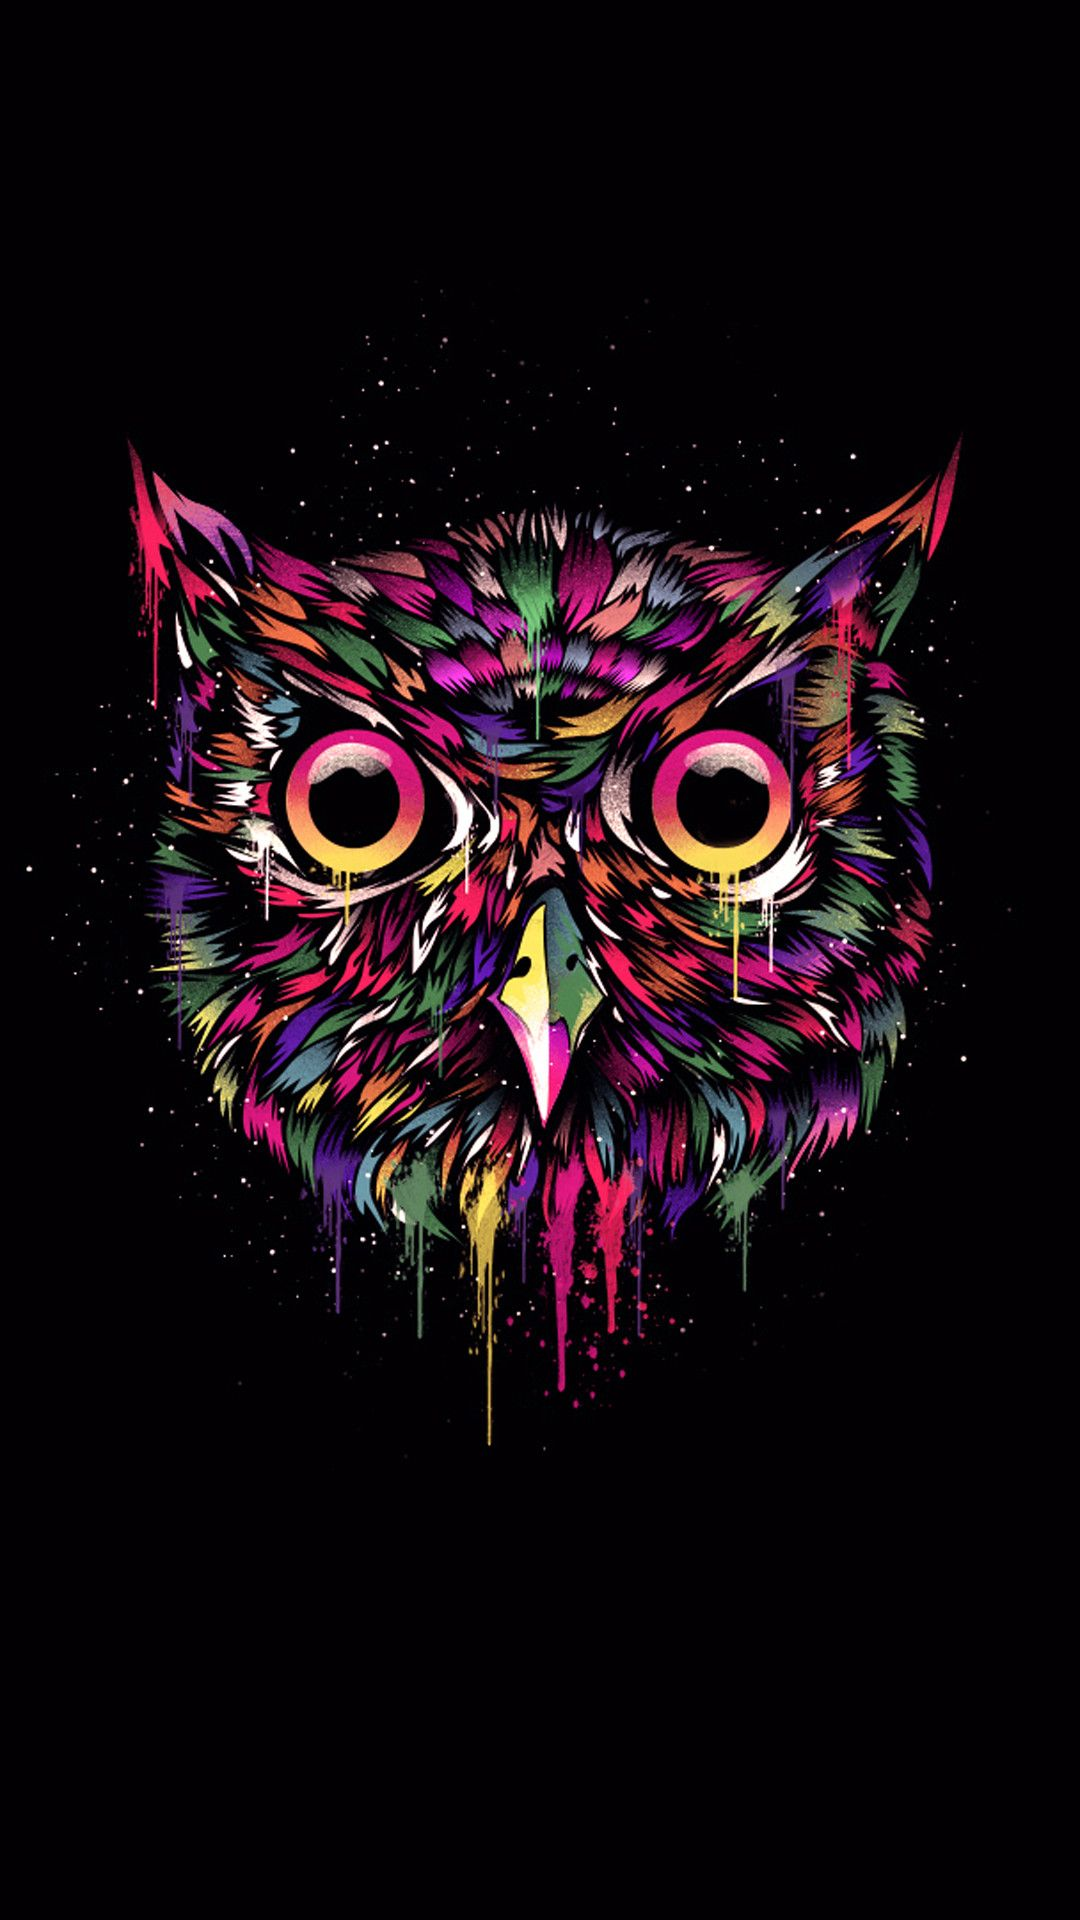 76 Owl Iphone Wallpapers On Wallpaperplay Owl Wallpaper Cute Owls Wallpaper Owl Wallpaper Iphone